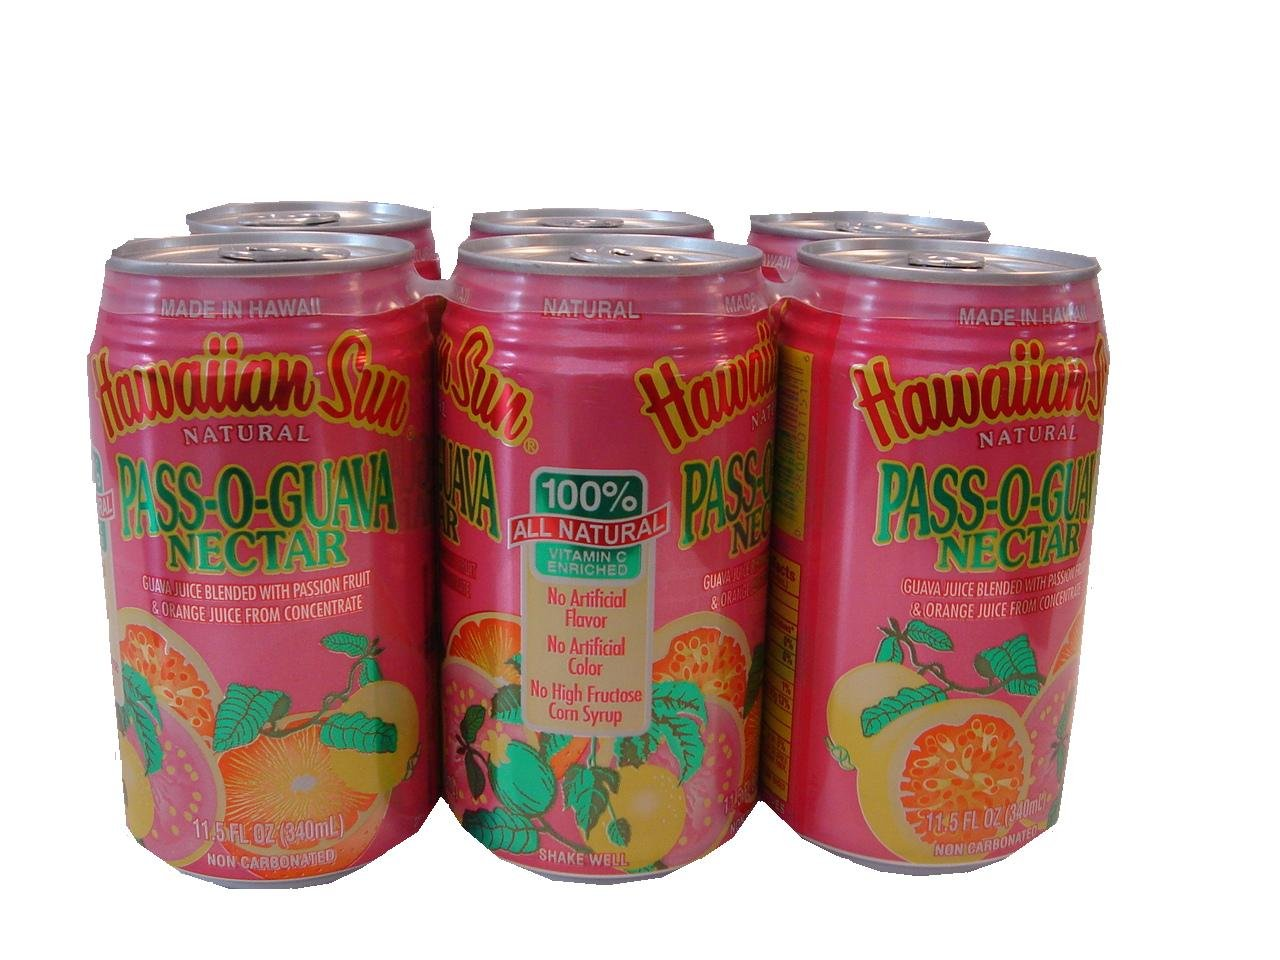 Passion Fruit & Guava Pass-O-Guava Non Carbonated Drink - 11.5 oz (Pack of 12)